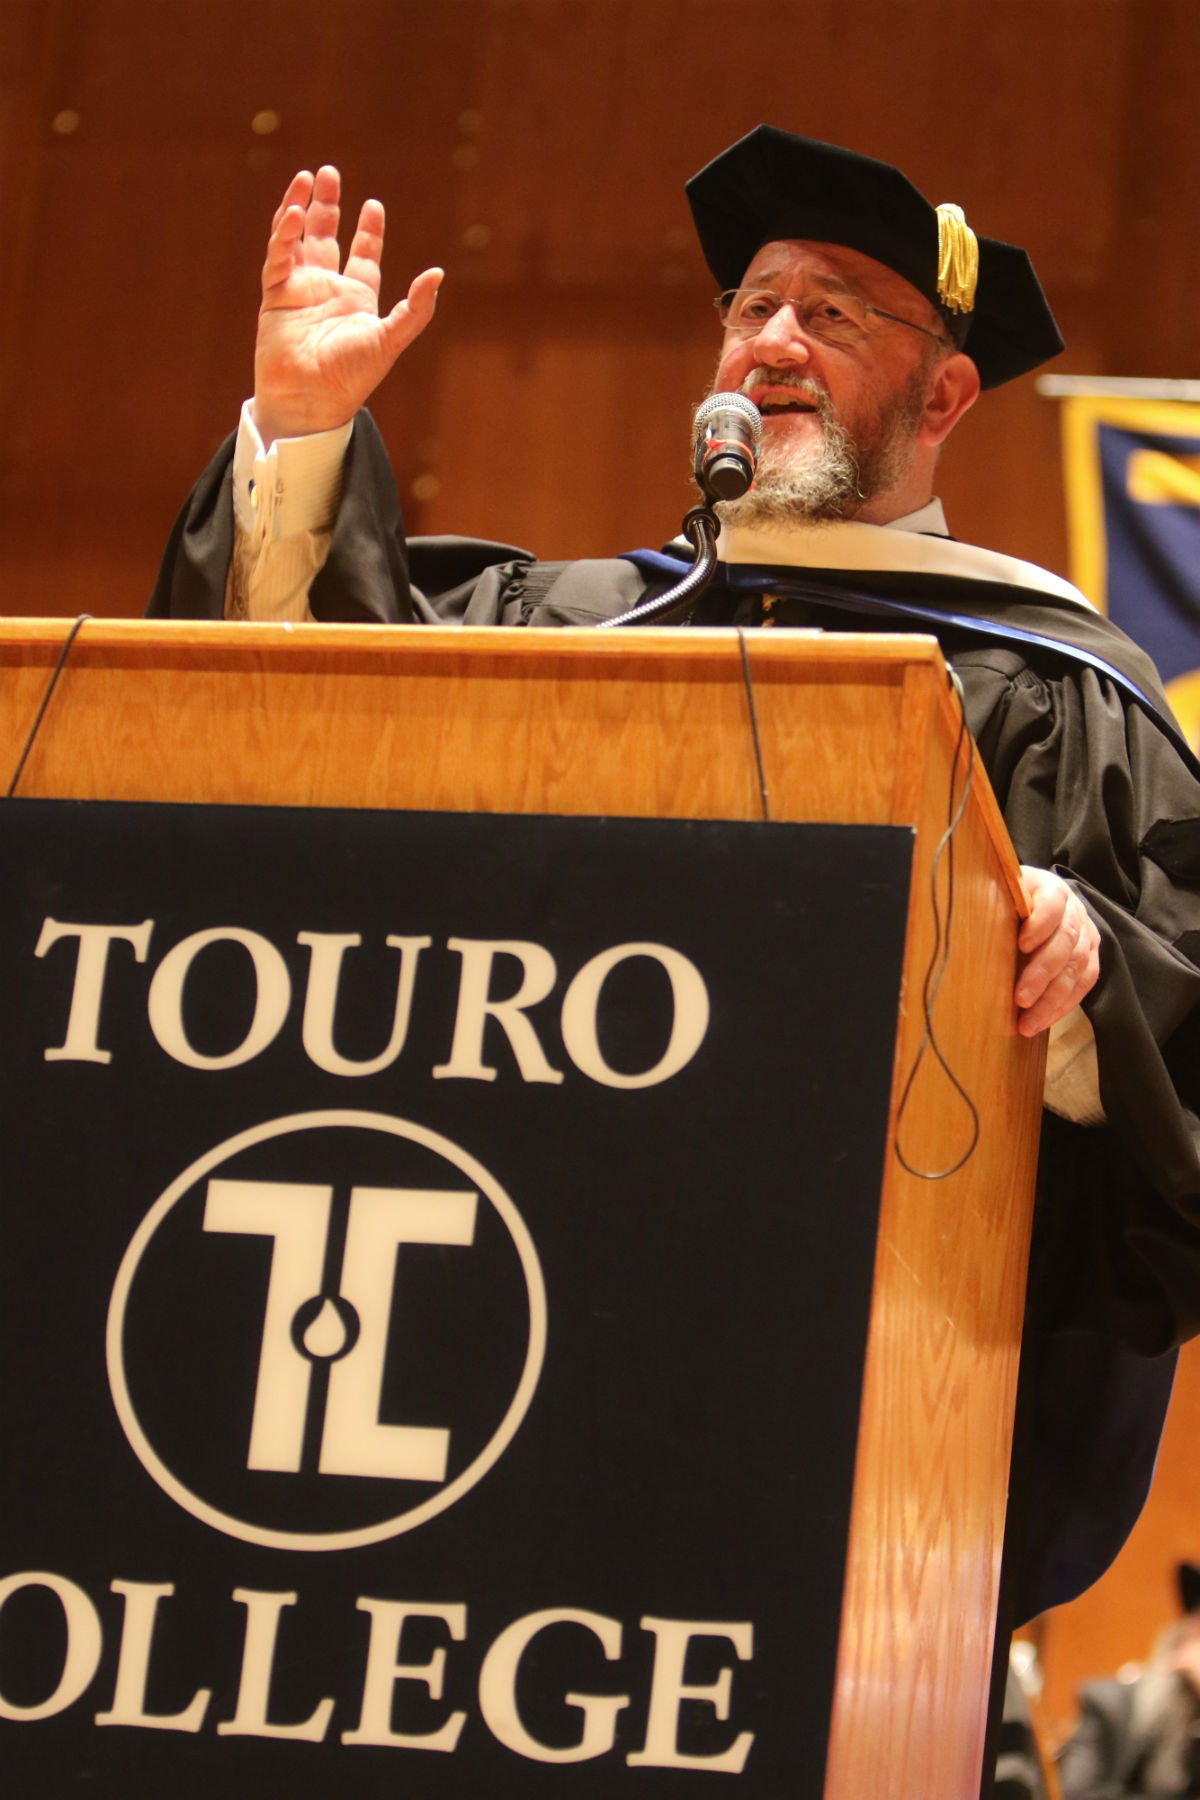 Rabbi Ephraim Mirvis, the Chief Rabbi of the United Hebrew Congregations of the Commonwealth of the United Kingdom, received an honorary degree at the 42nd annual commencement exercises of Touro College on Memorial Day.